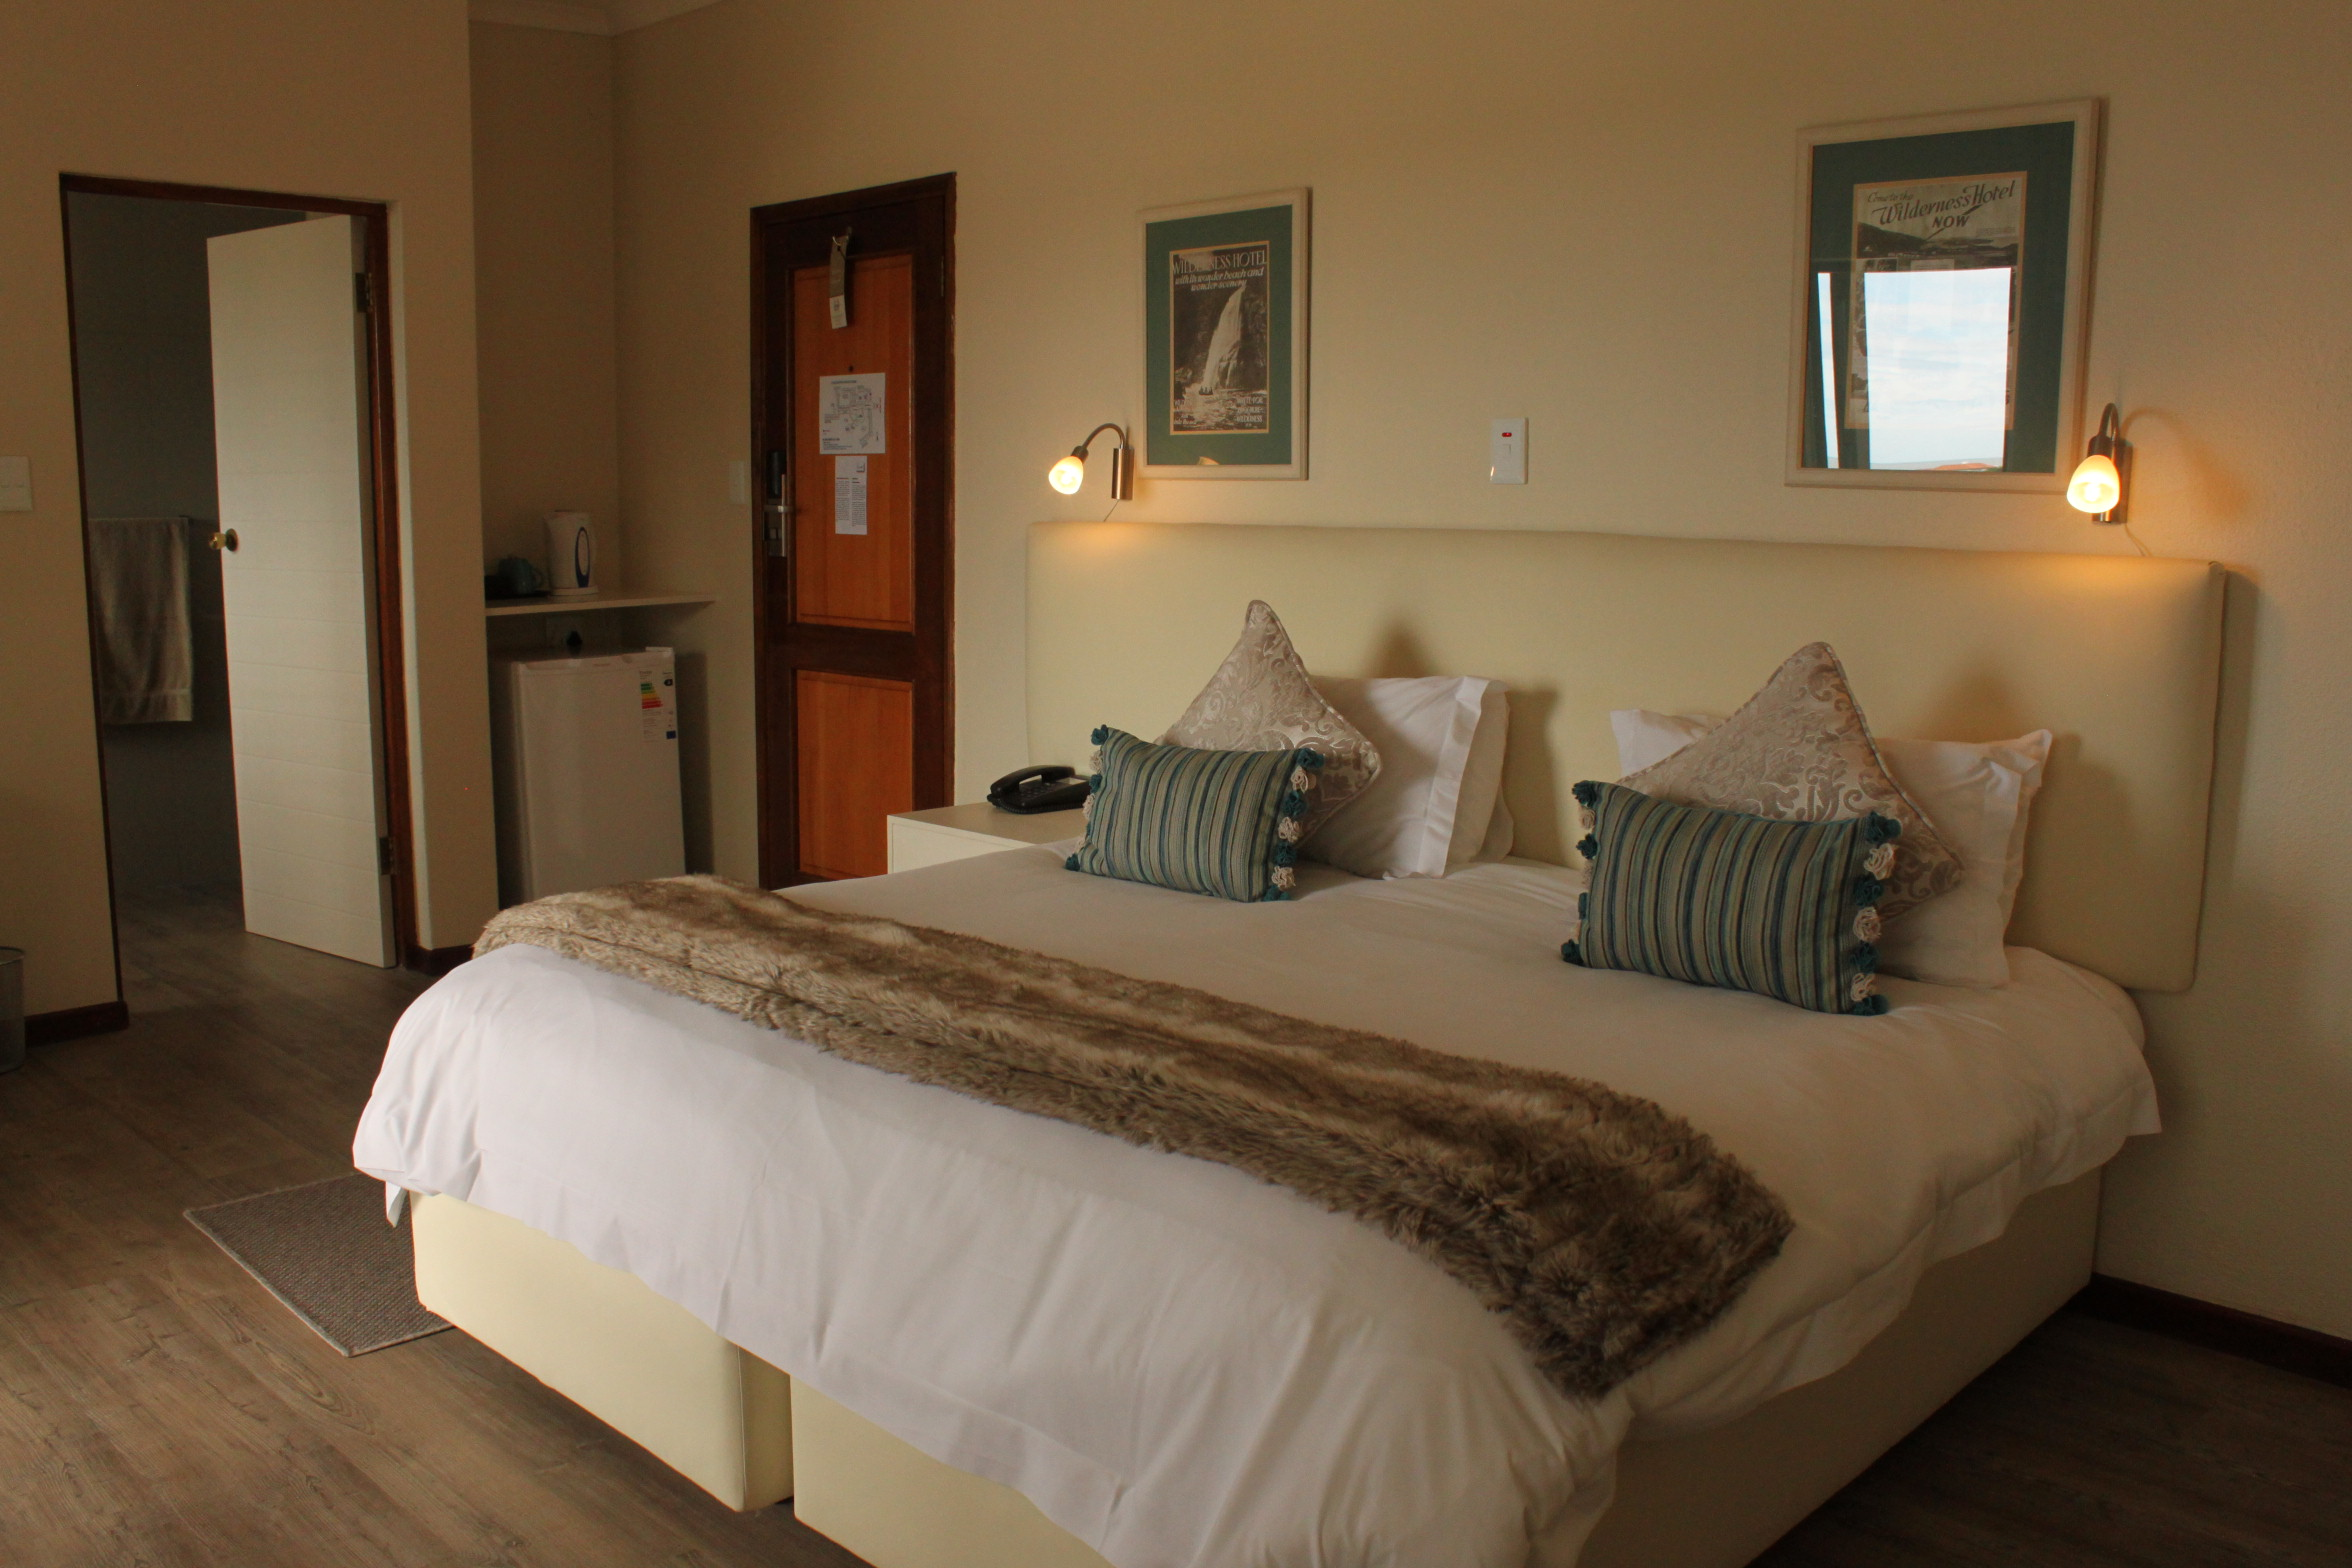 Auto hotel deluxe Motel The Wilderness Hotel Hotellookcom The Wilderness Hotel Golf In The Garden Route South Africa